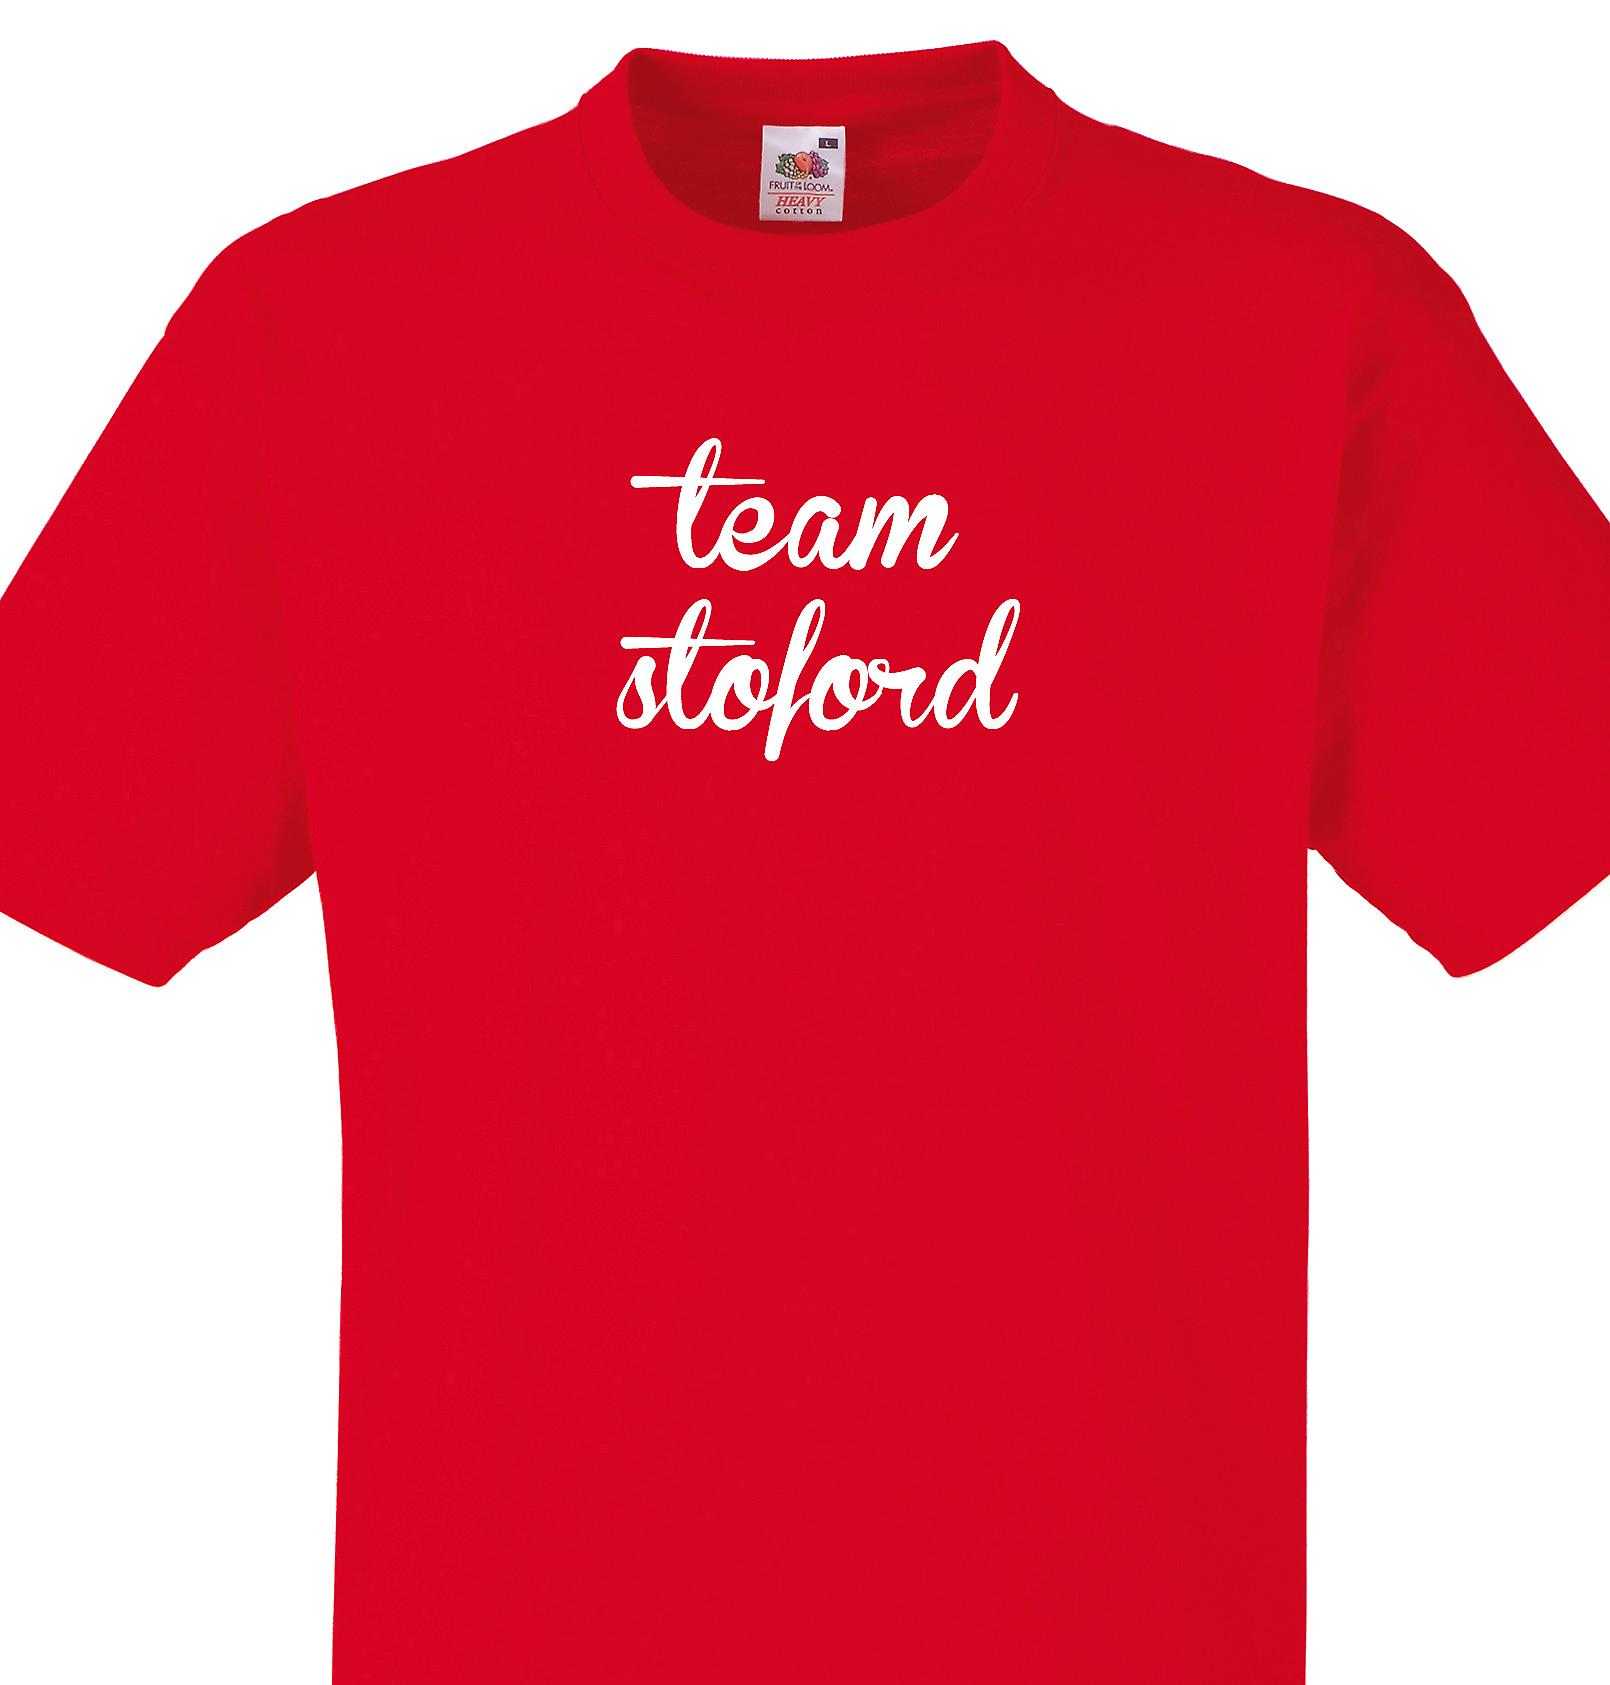 Team Stoford Red T shirt